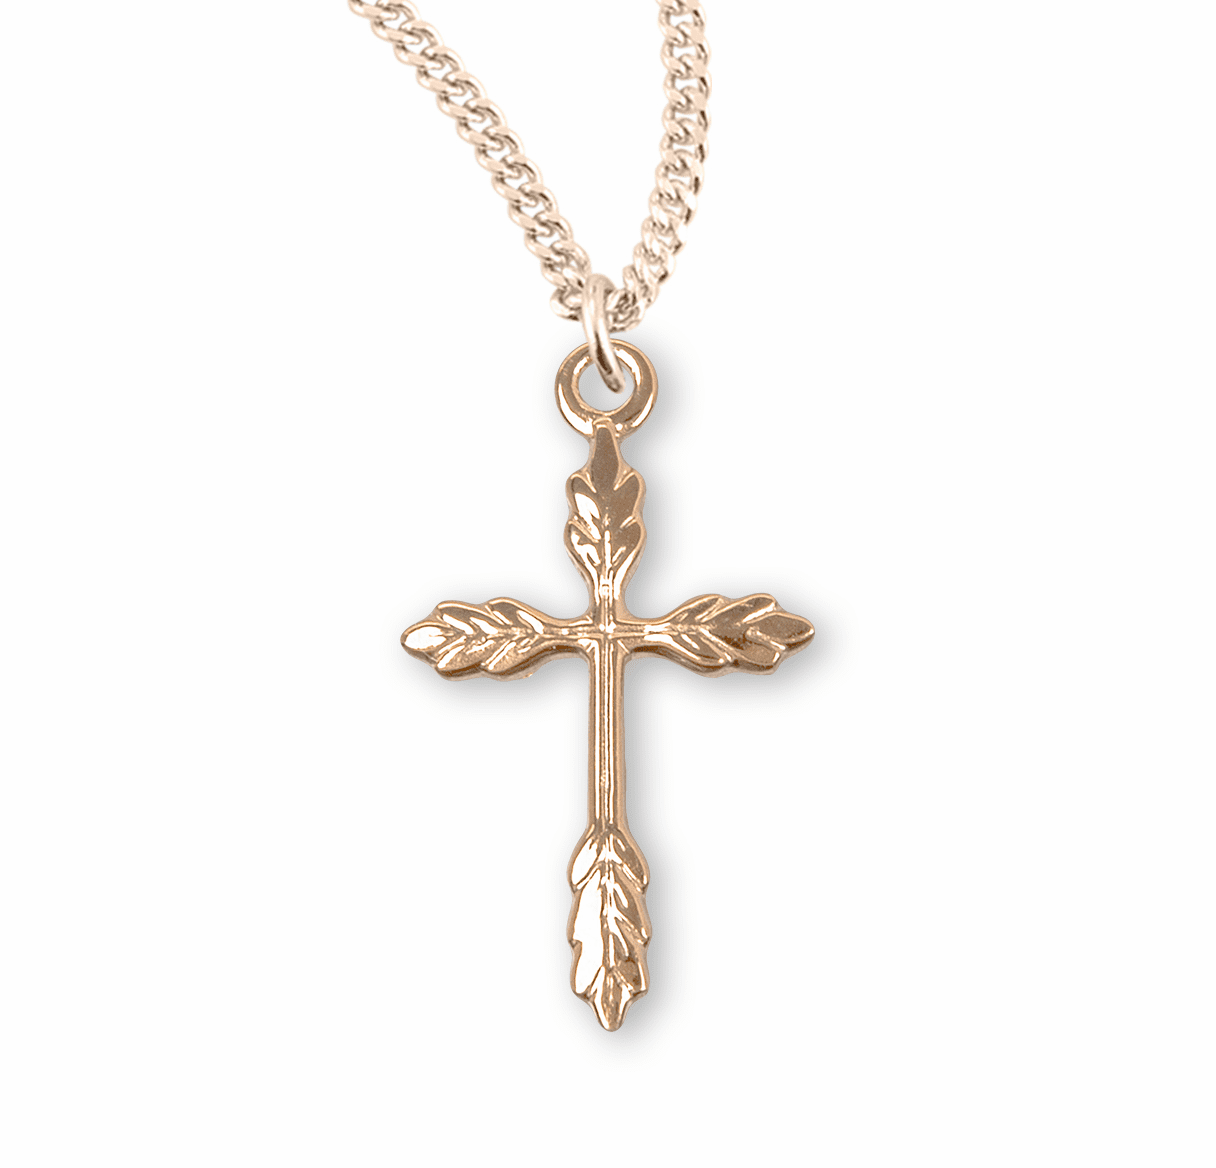 Small Gold Wheat Cross Necklace by HMH Religious